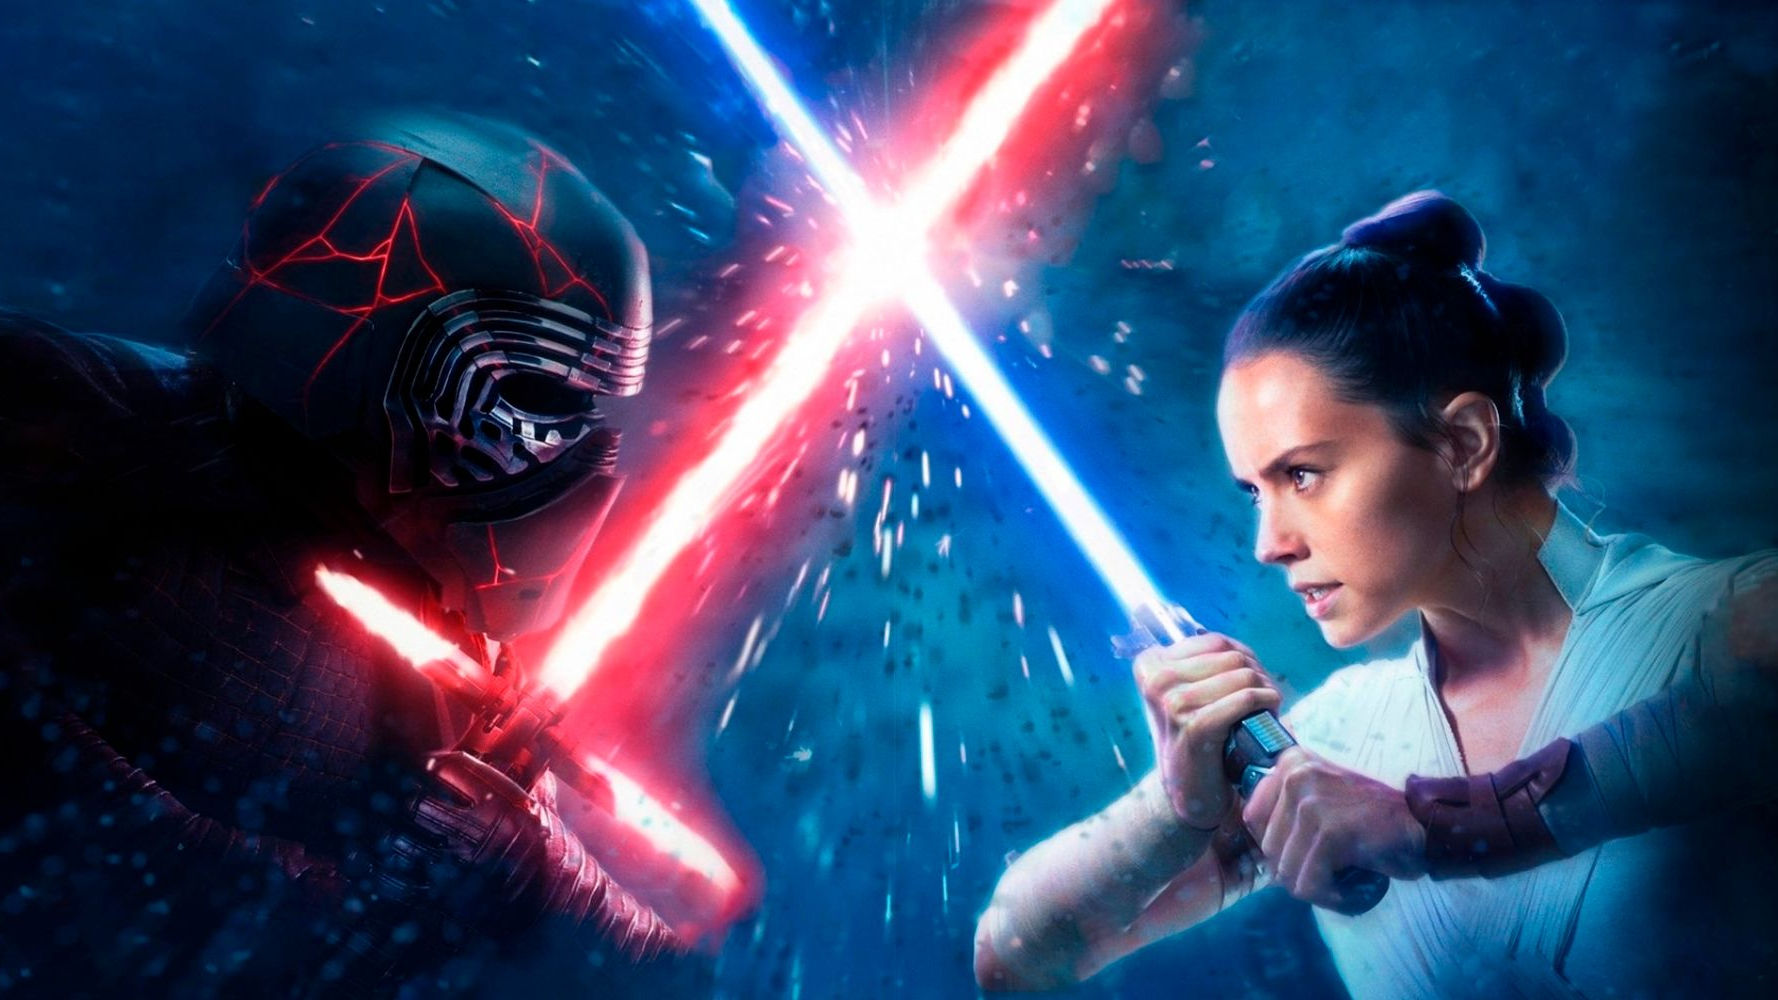 Jon Favreau's Plan To Erase The Star Wars Sequel Trilogy Revealed